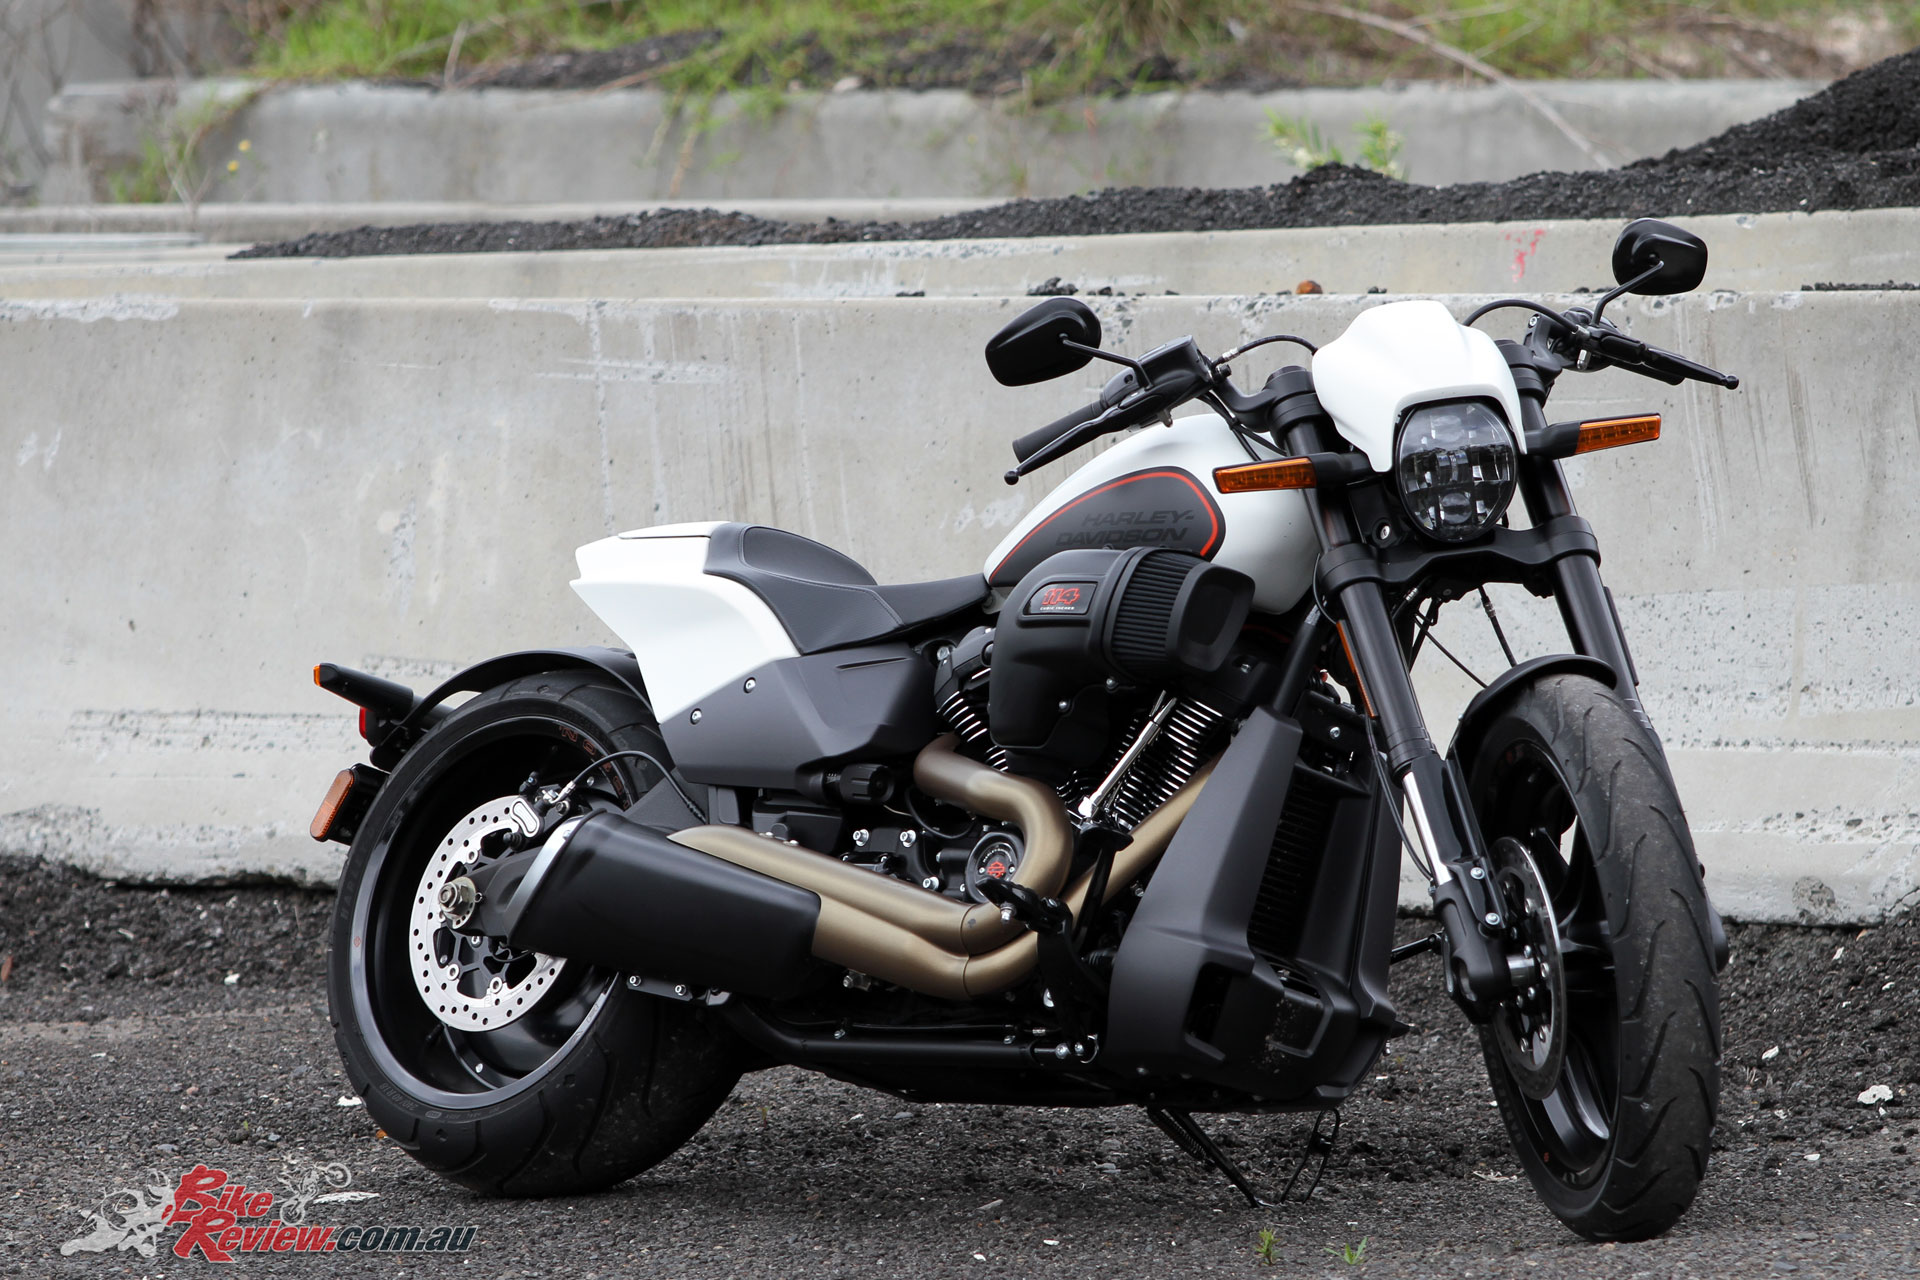 The 2019 Harley-Davidson FXDR is lean and mean with typically high build quality and attention to detail